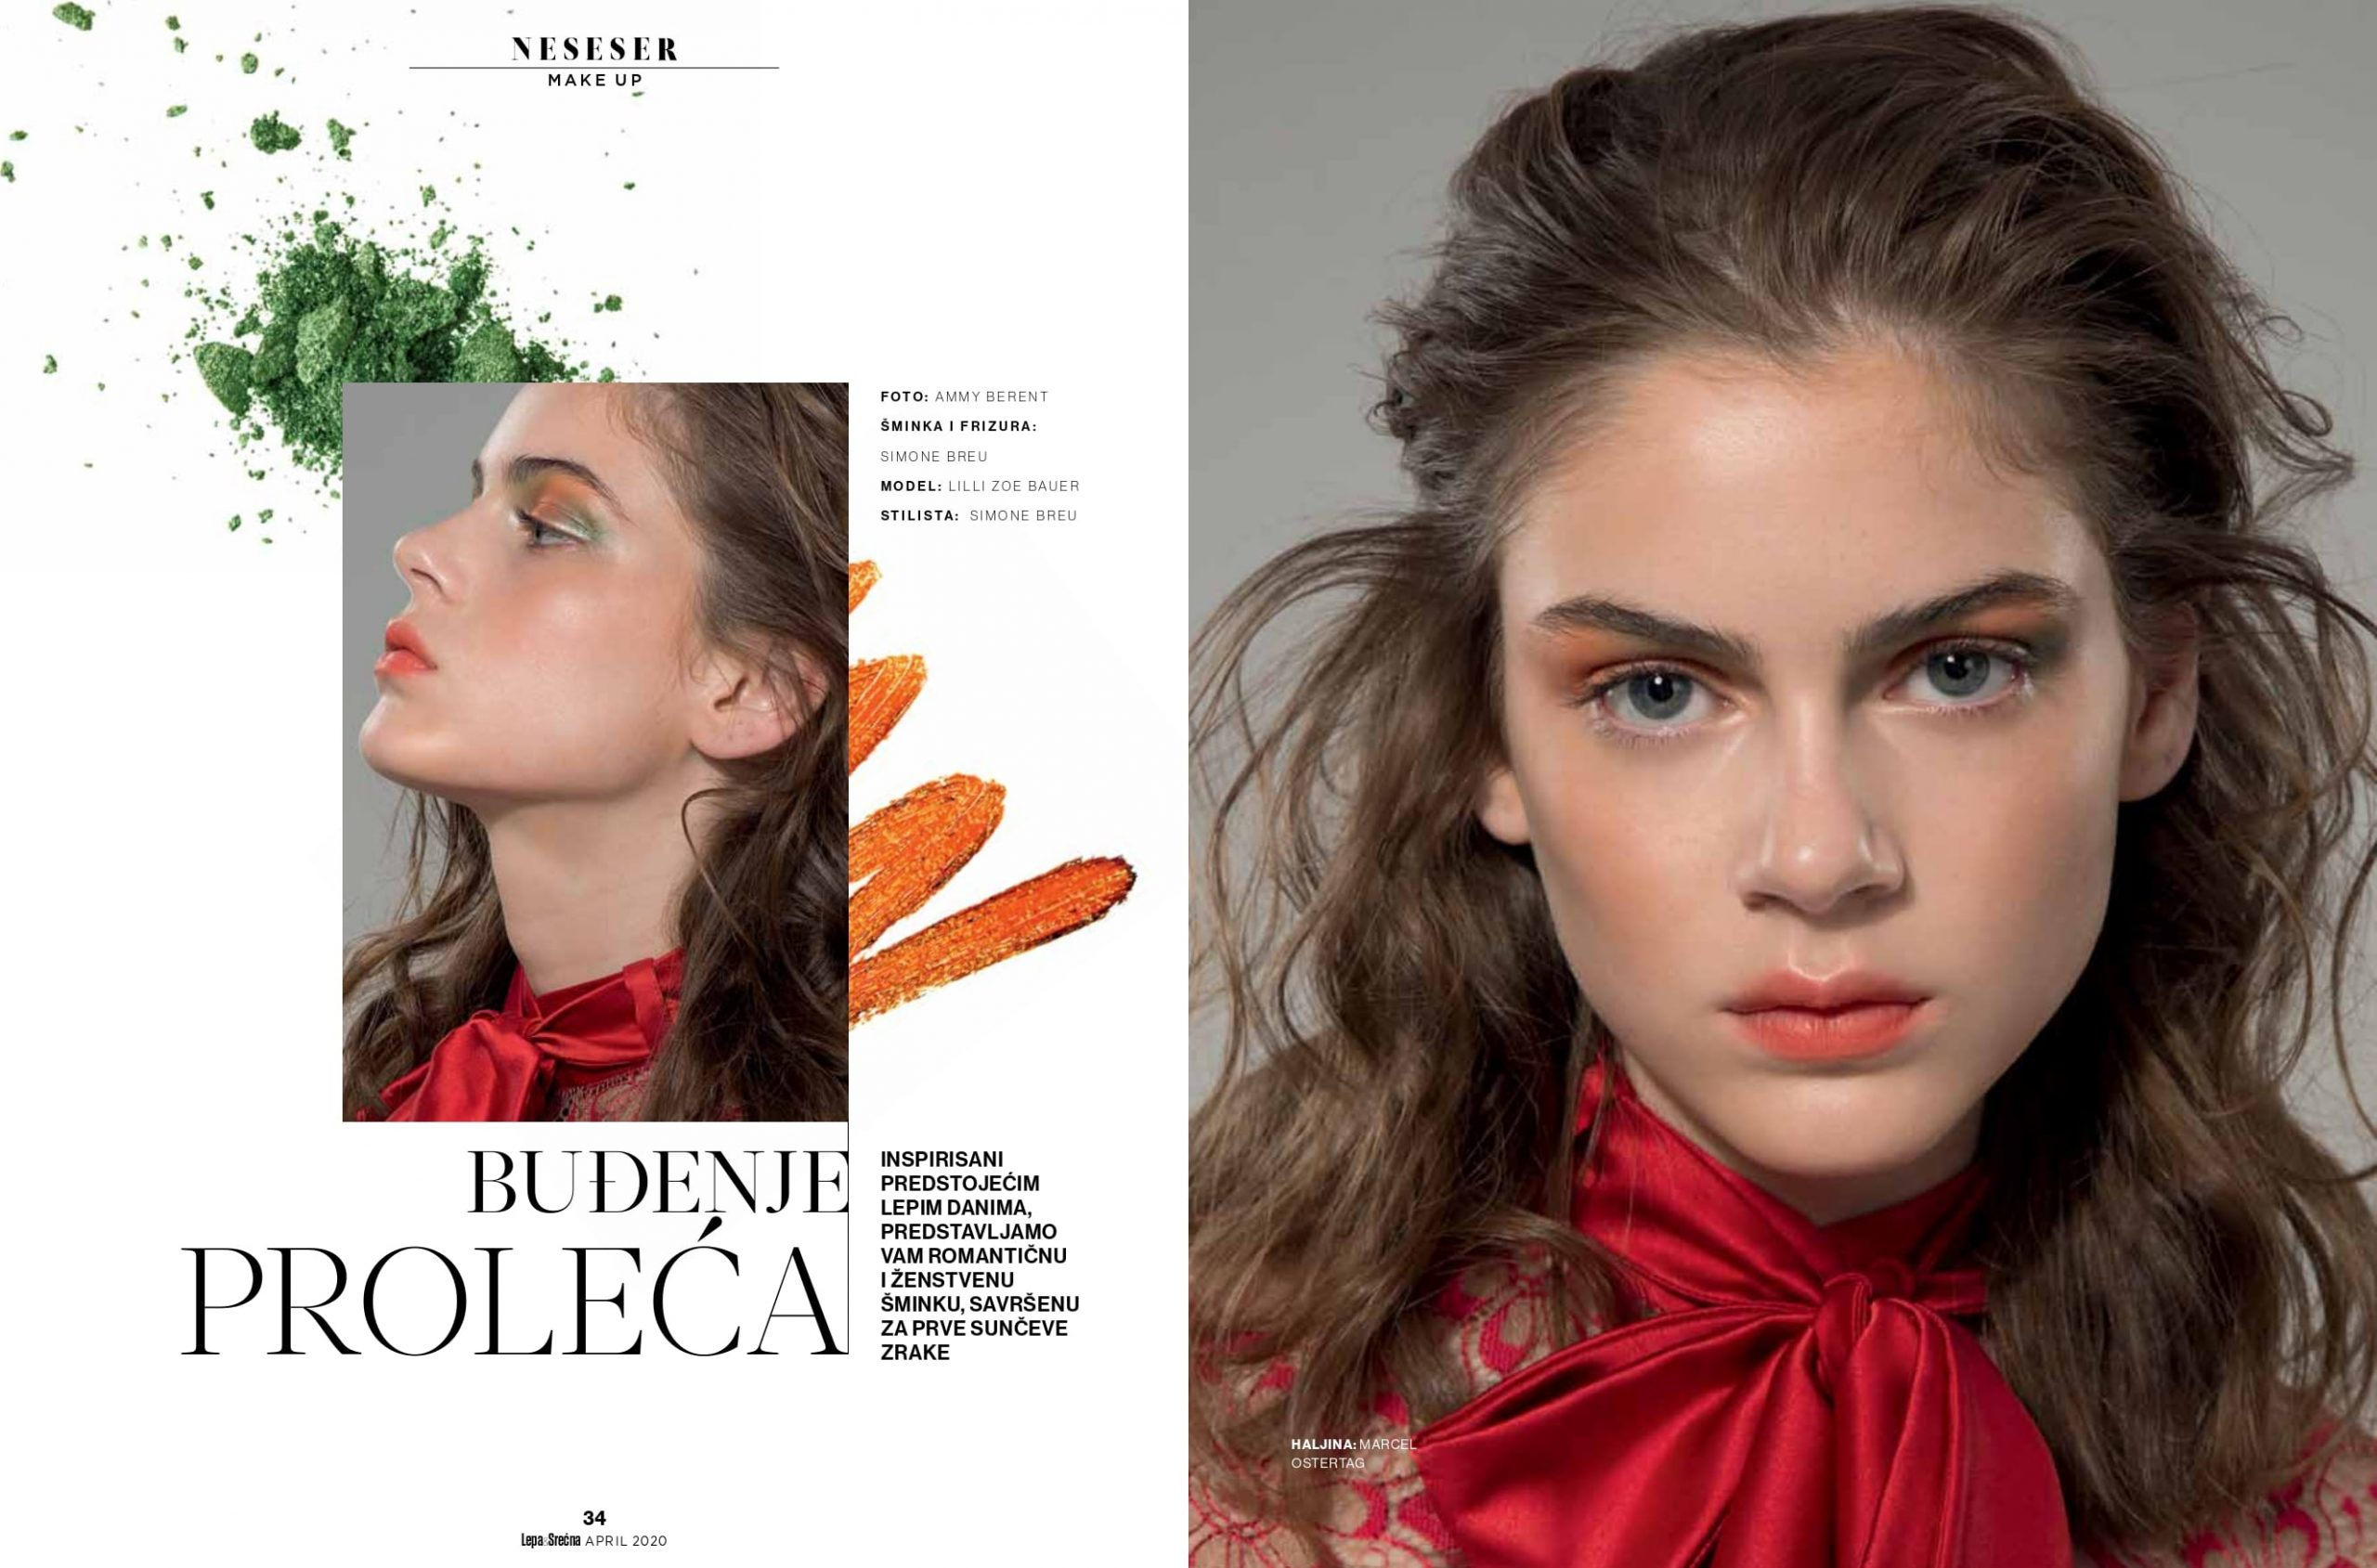 034 039 Beauty Editorial LS April 2020 Page 0001 Min